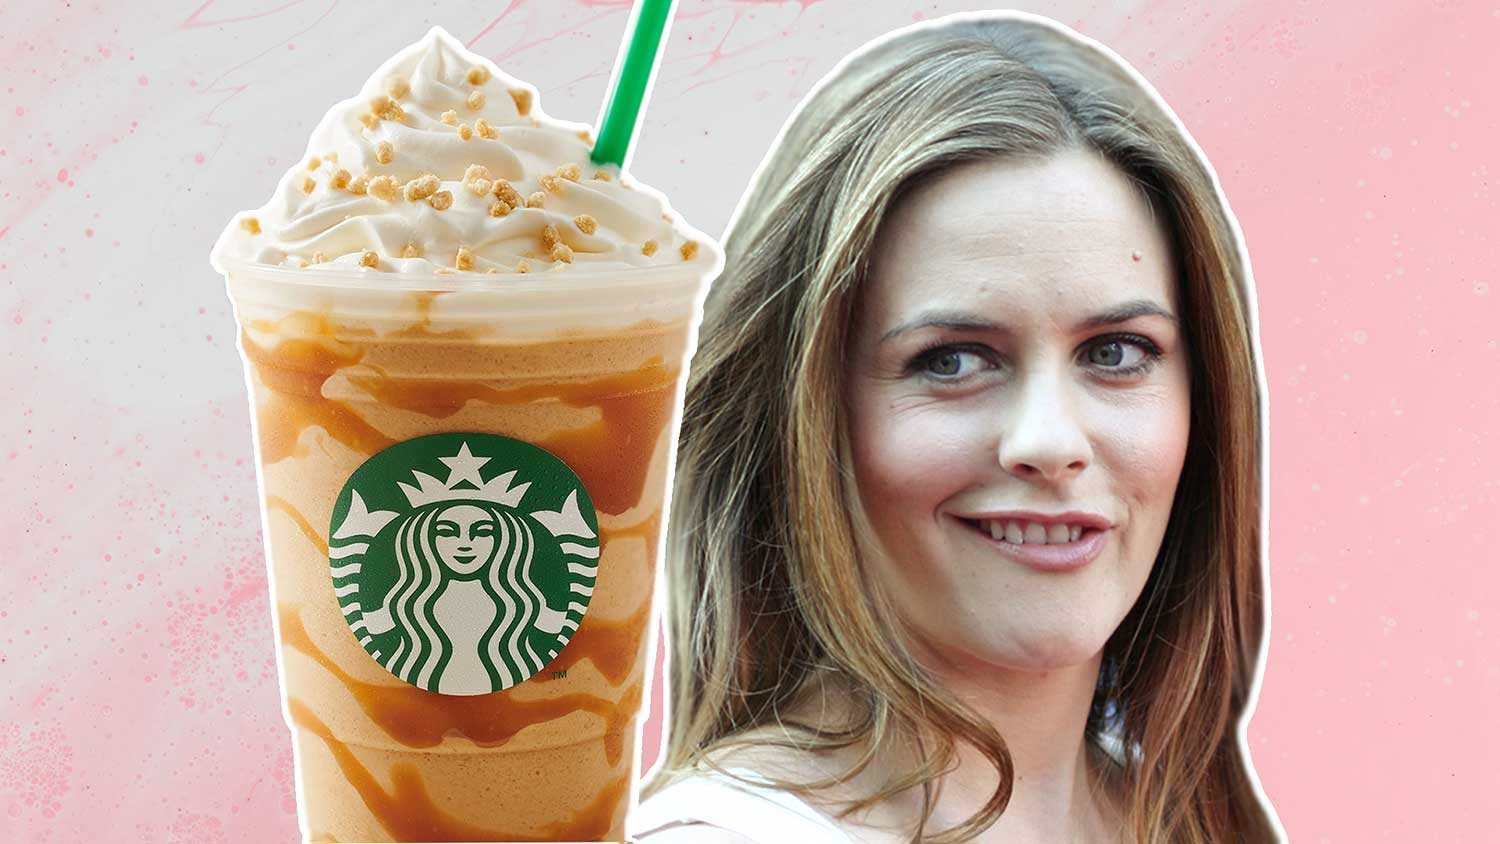 Alicia Silverstone Is P*ssed That Starbucks Charges Extra for Vegan Milk